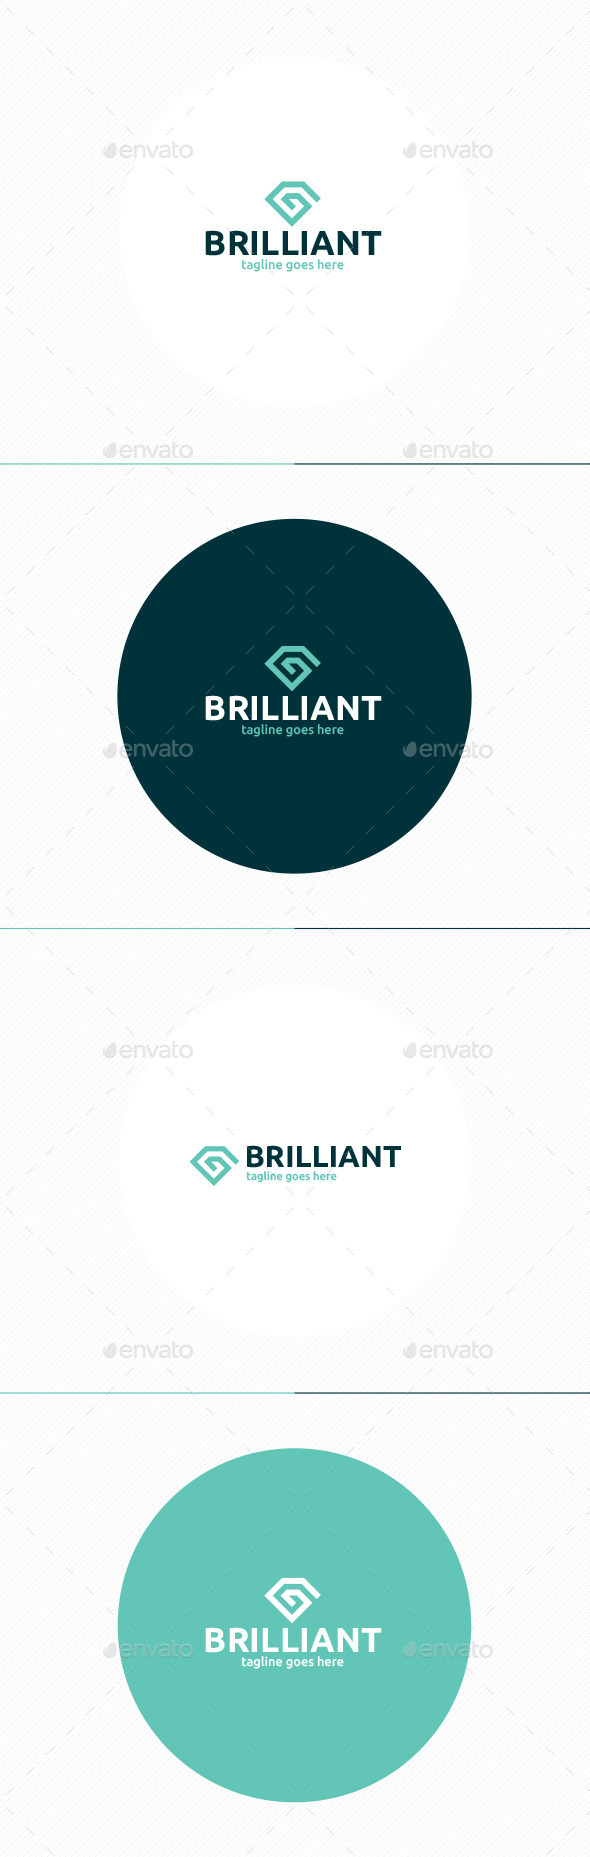 GraphicRiver Brilliant Logo 11508967